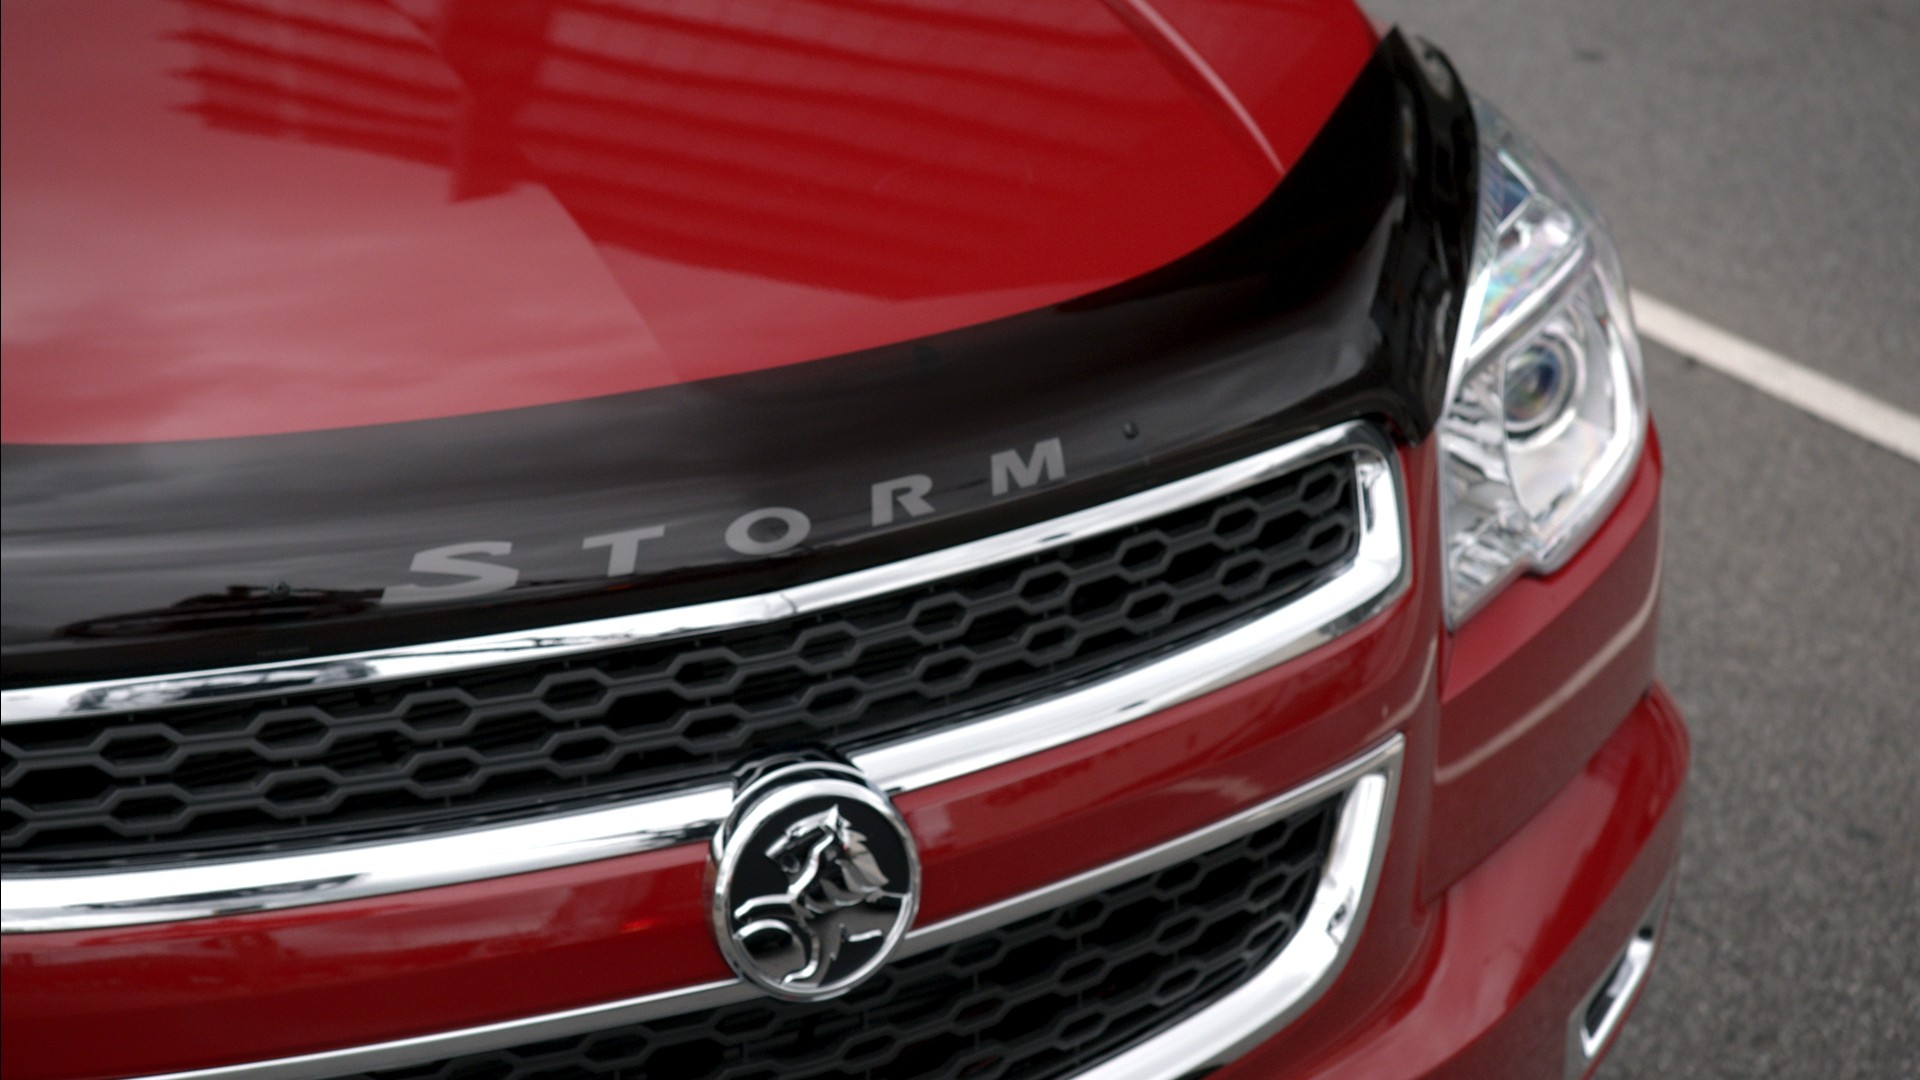 2015 Nissan Maxima >> 2015 Holden Colorado Storm is a Special Edition Pickup ...